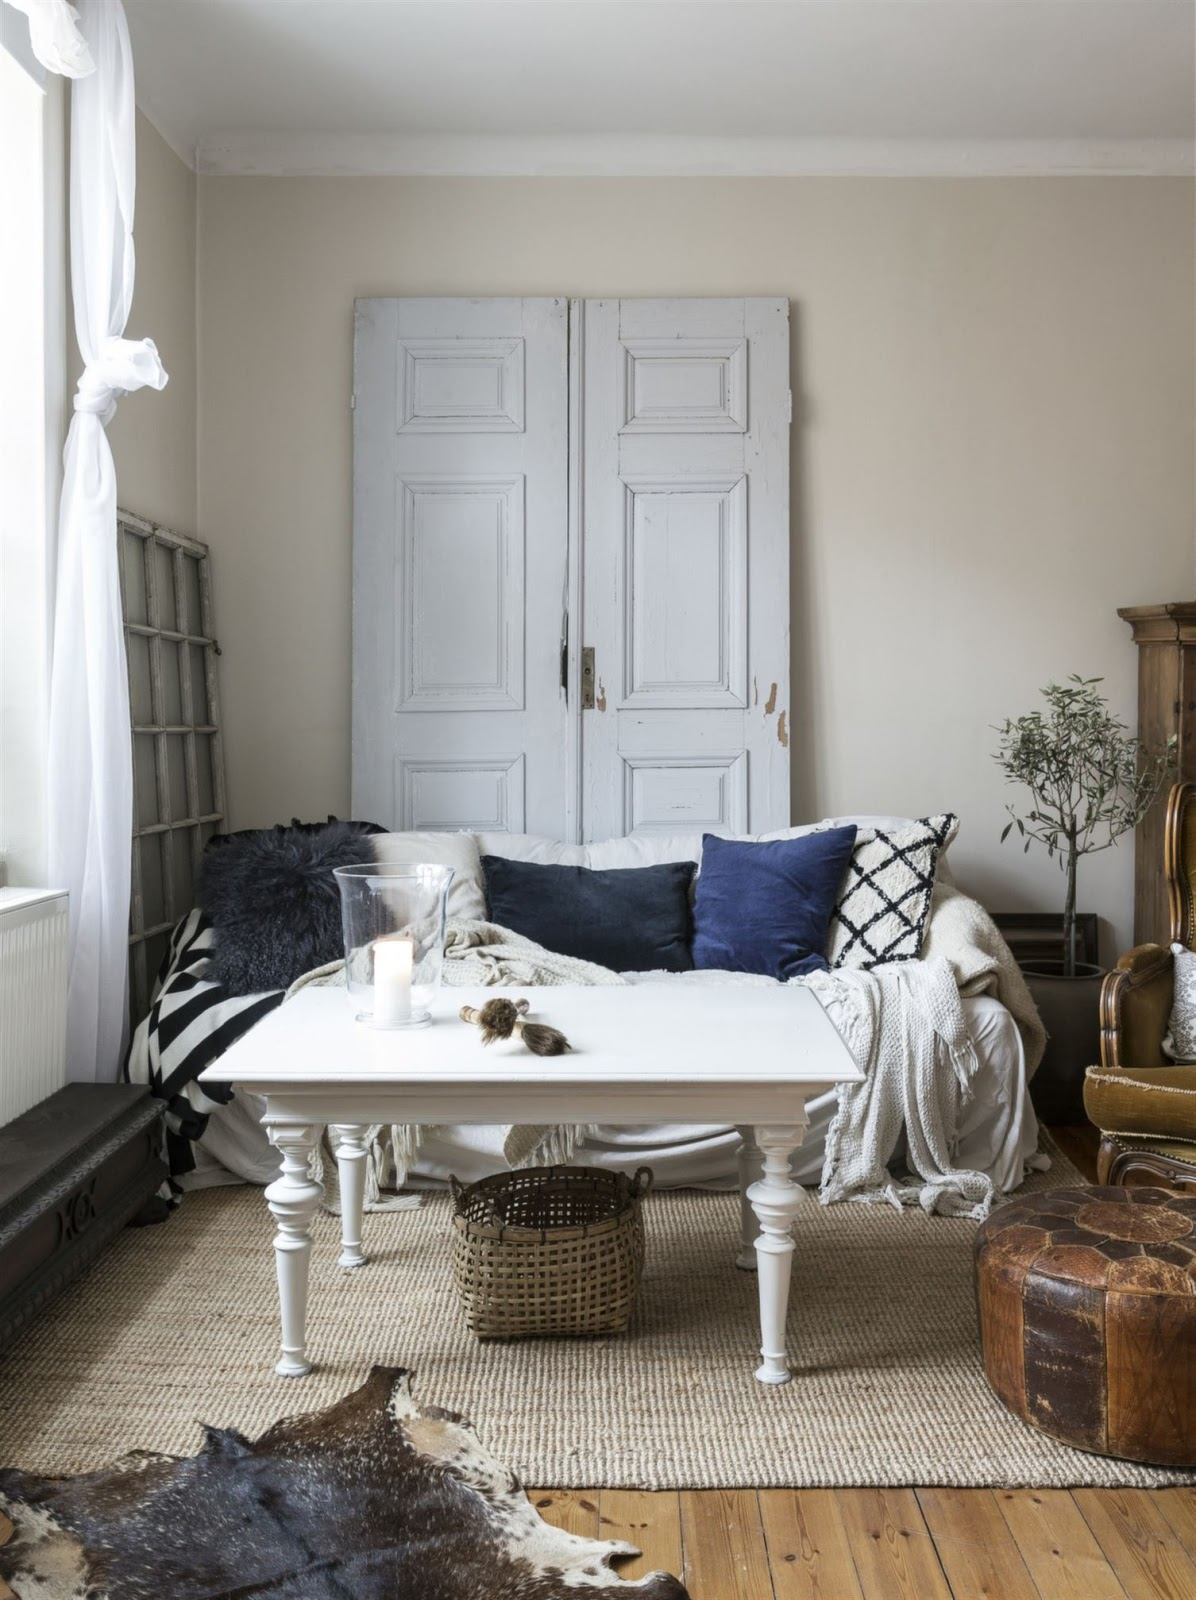 A Small Swedish Apartment With Vintage Furniture And Flea Market Finds